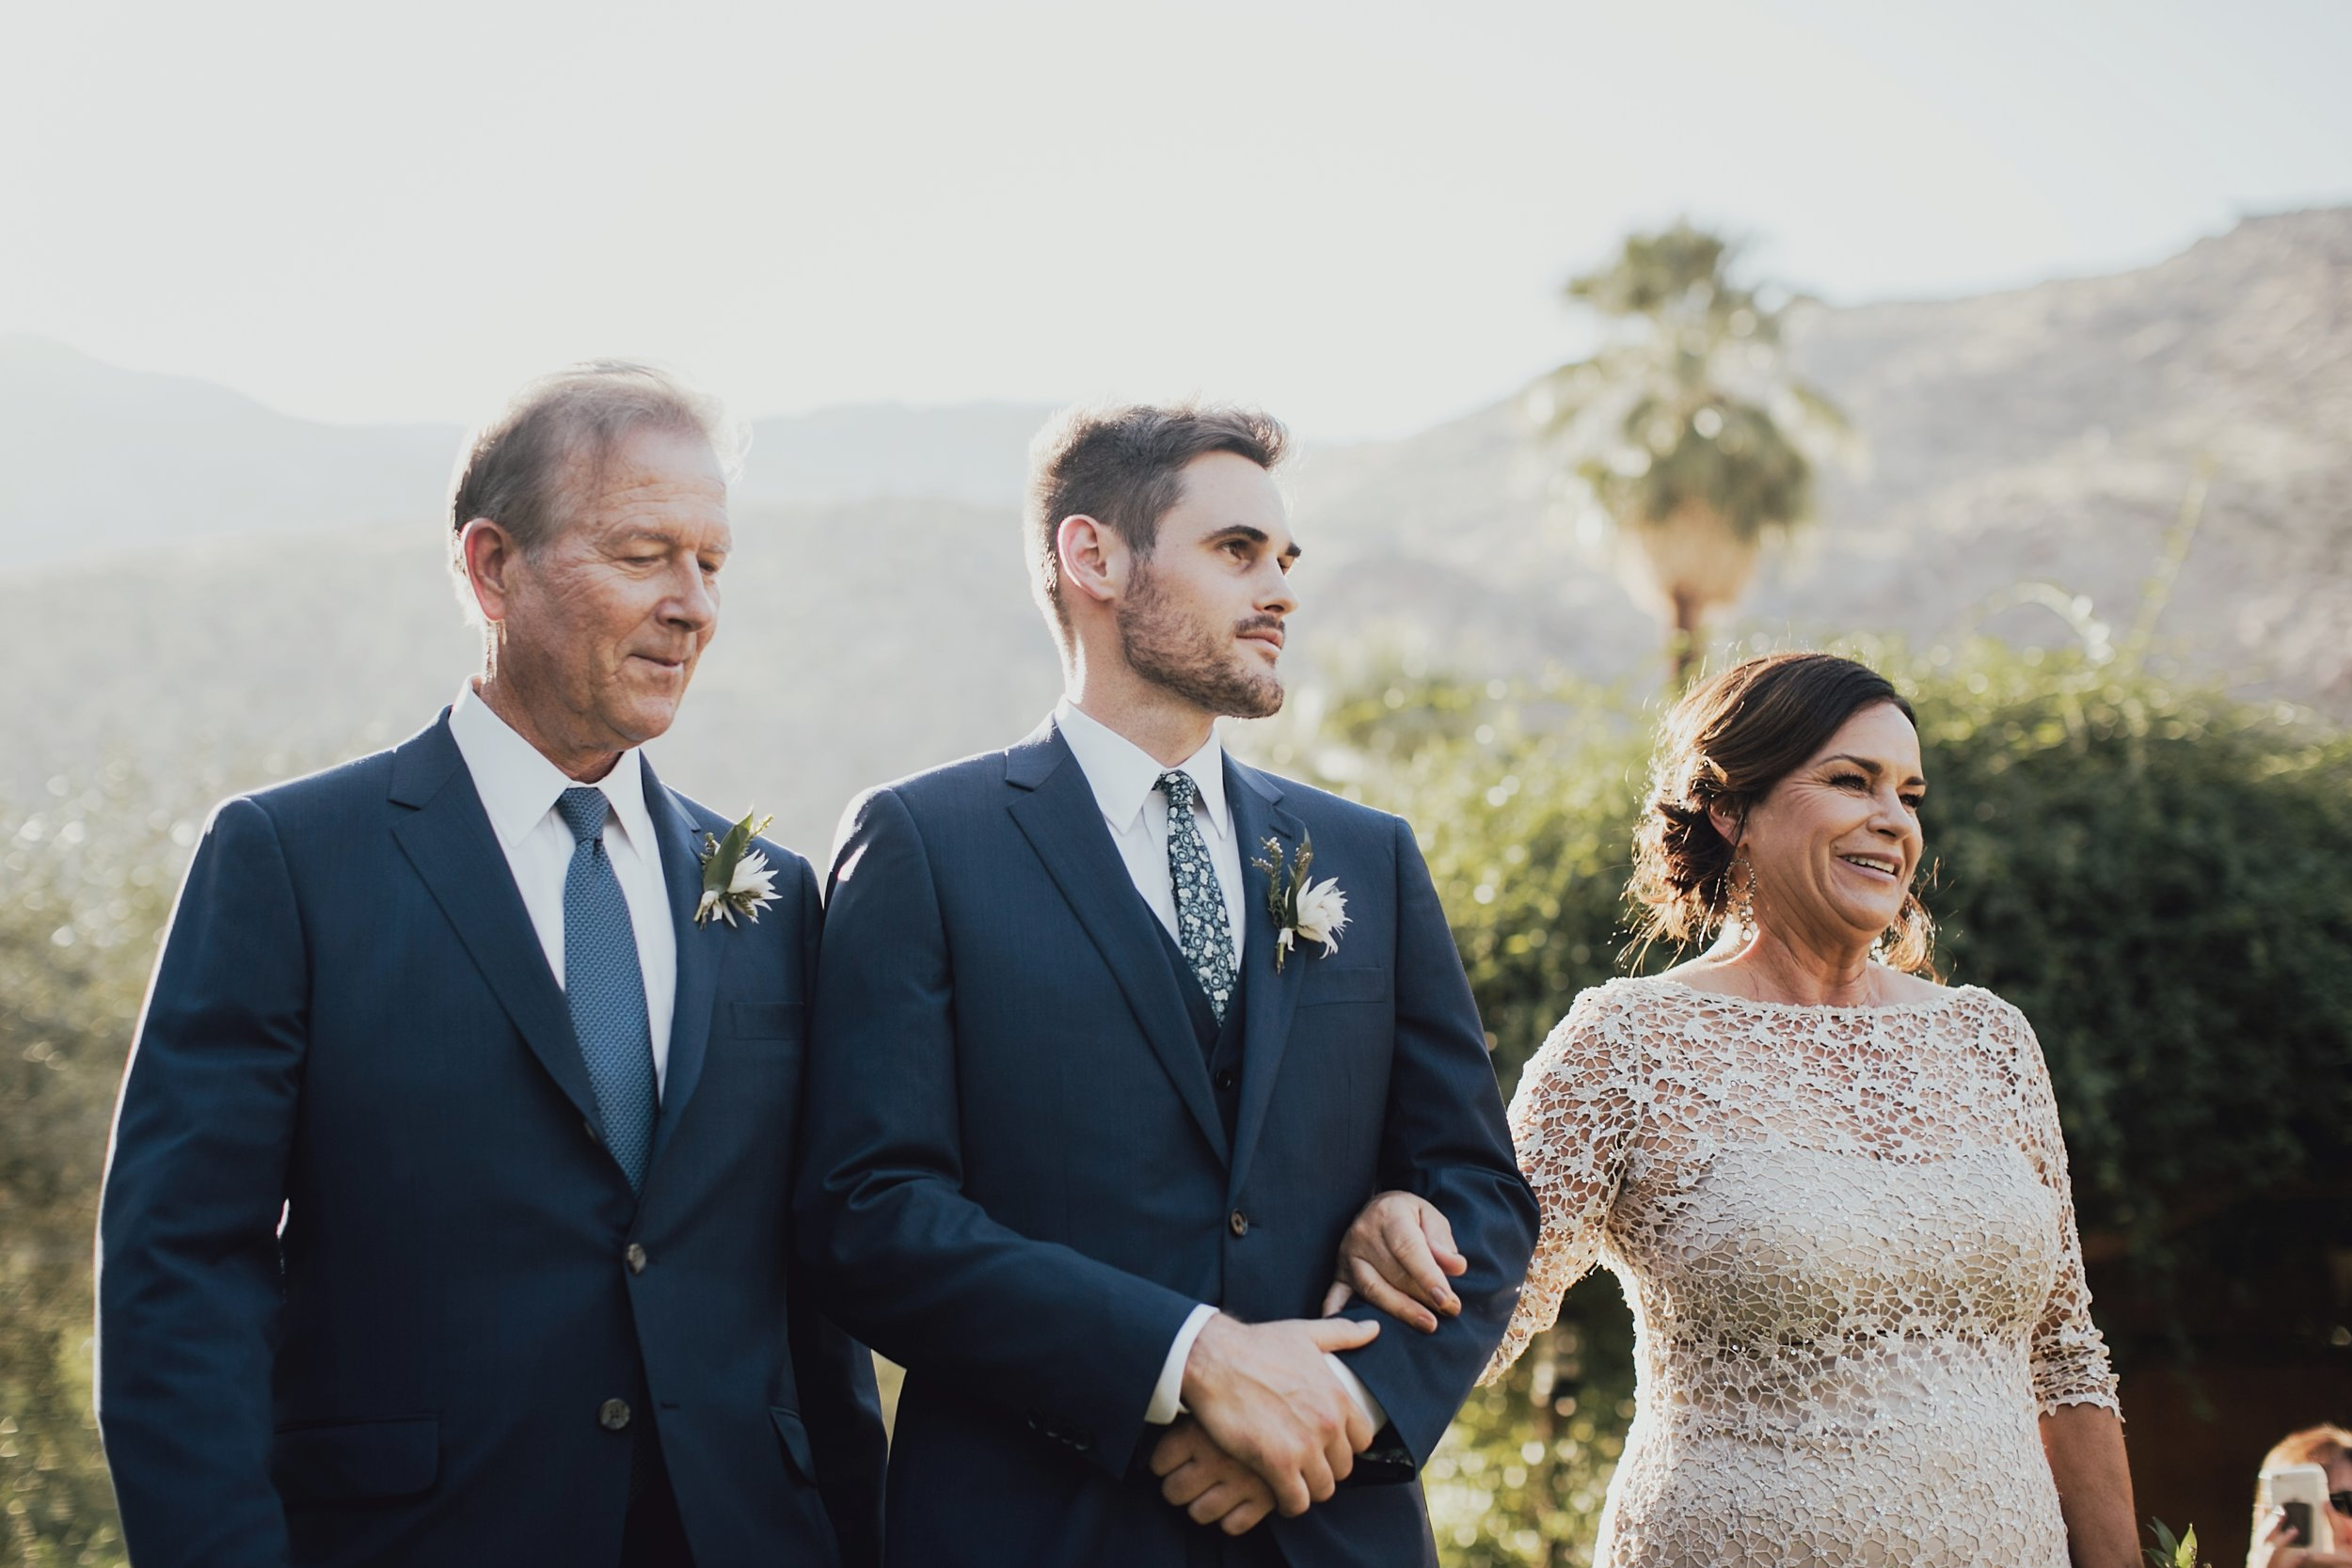 mark walking his parents down the aisle at the start of the ceremony